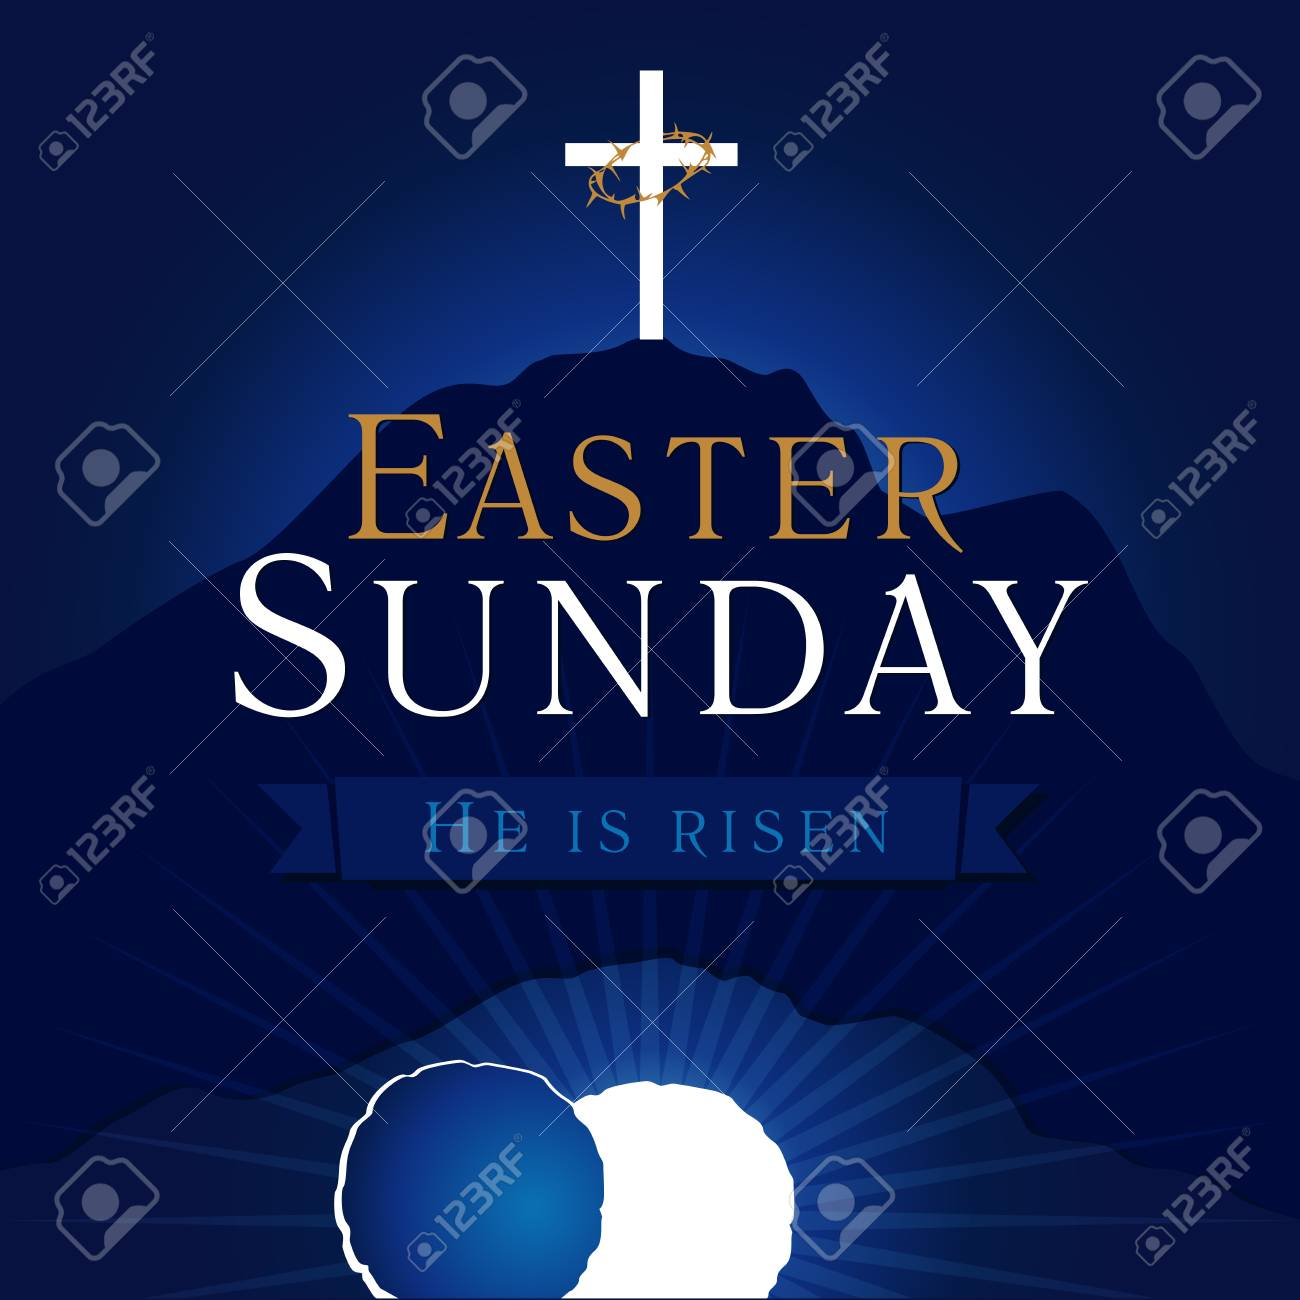 Easter Sunday, He is risen. Greetings, invite vector blue color template. Sunrise, open lighting empty cave, rock off, shining angel inside. Crown of thorns. Religious symbol. Jesus up from the death. - 95858924